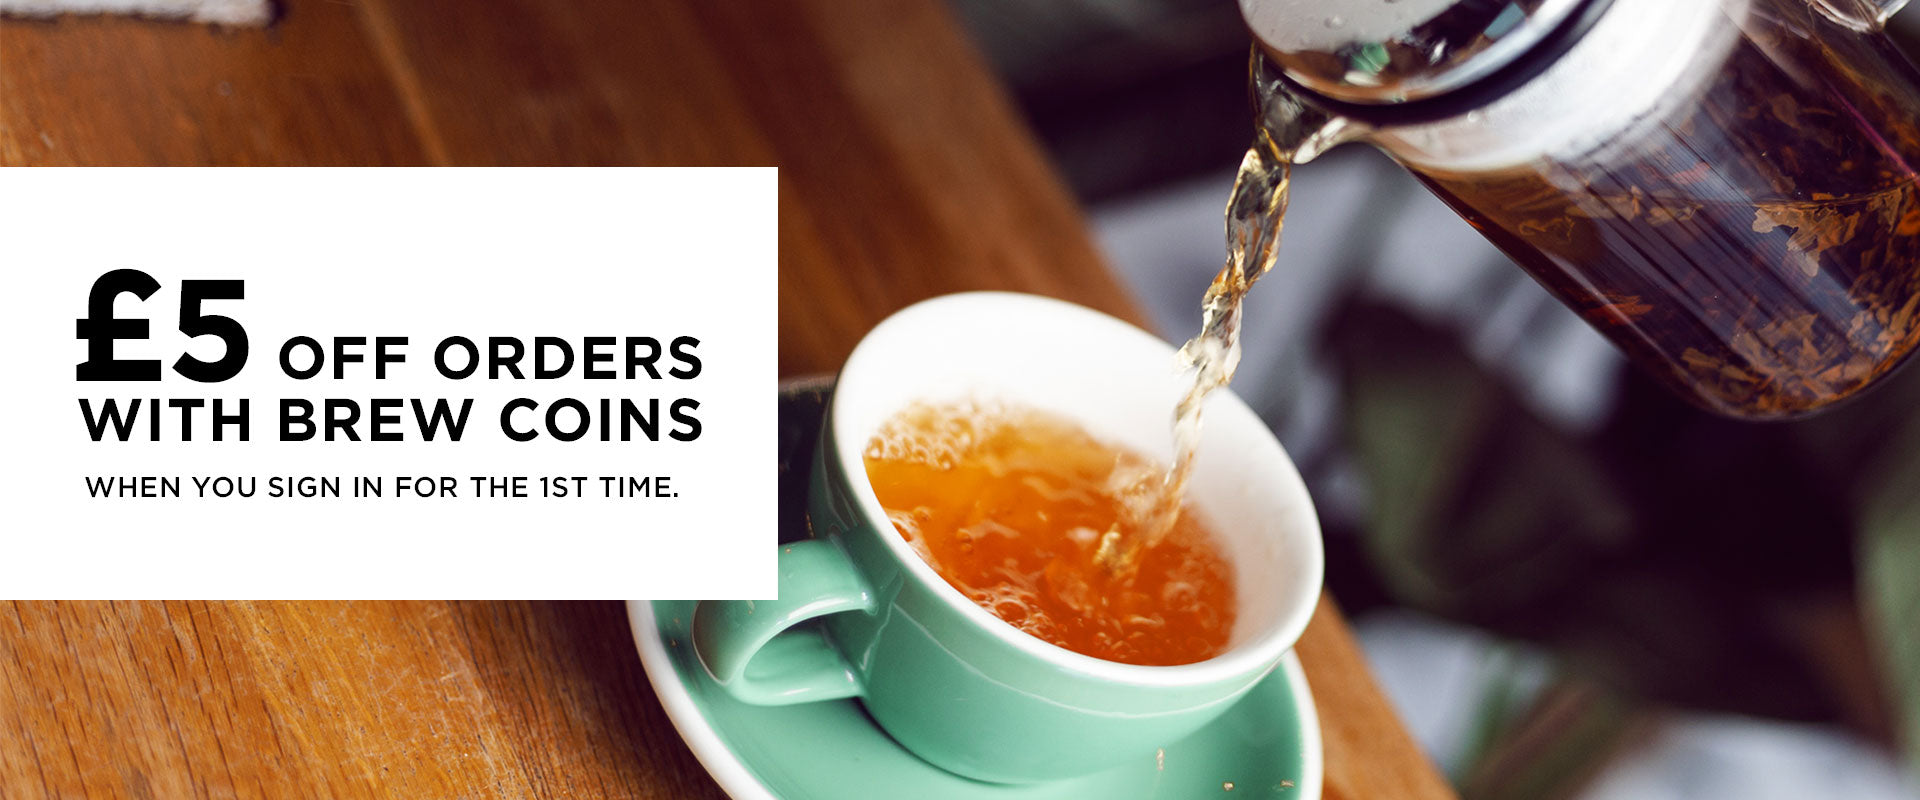 READ ALL ABOUT BREW COINS OVER HERE.